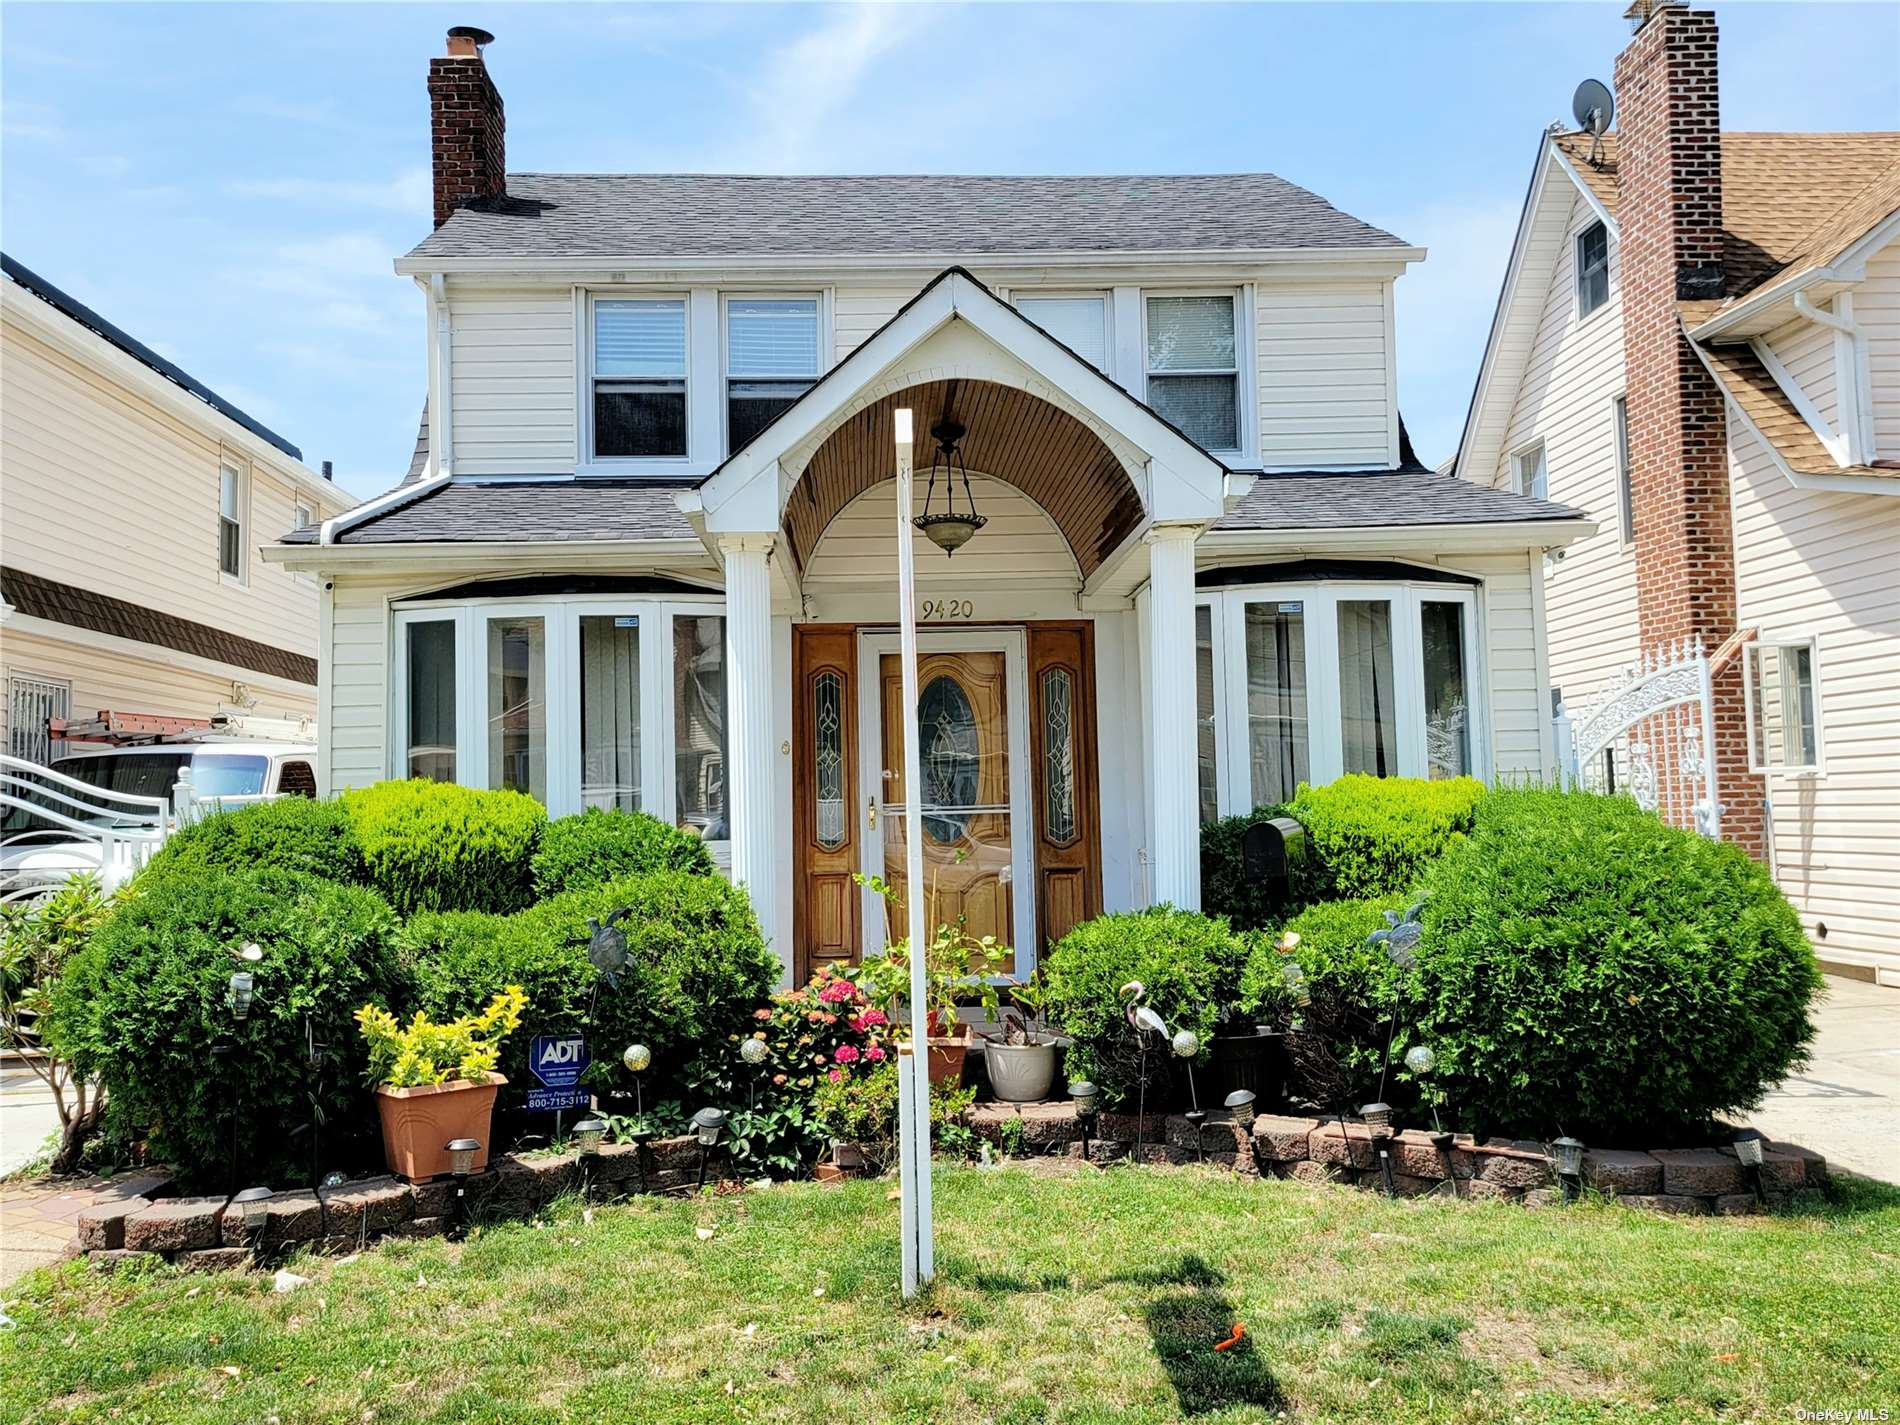 94-20 215th Place, Queens Village, NY 11428